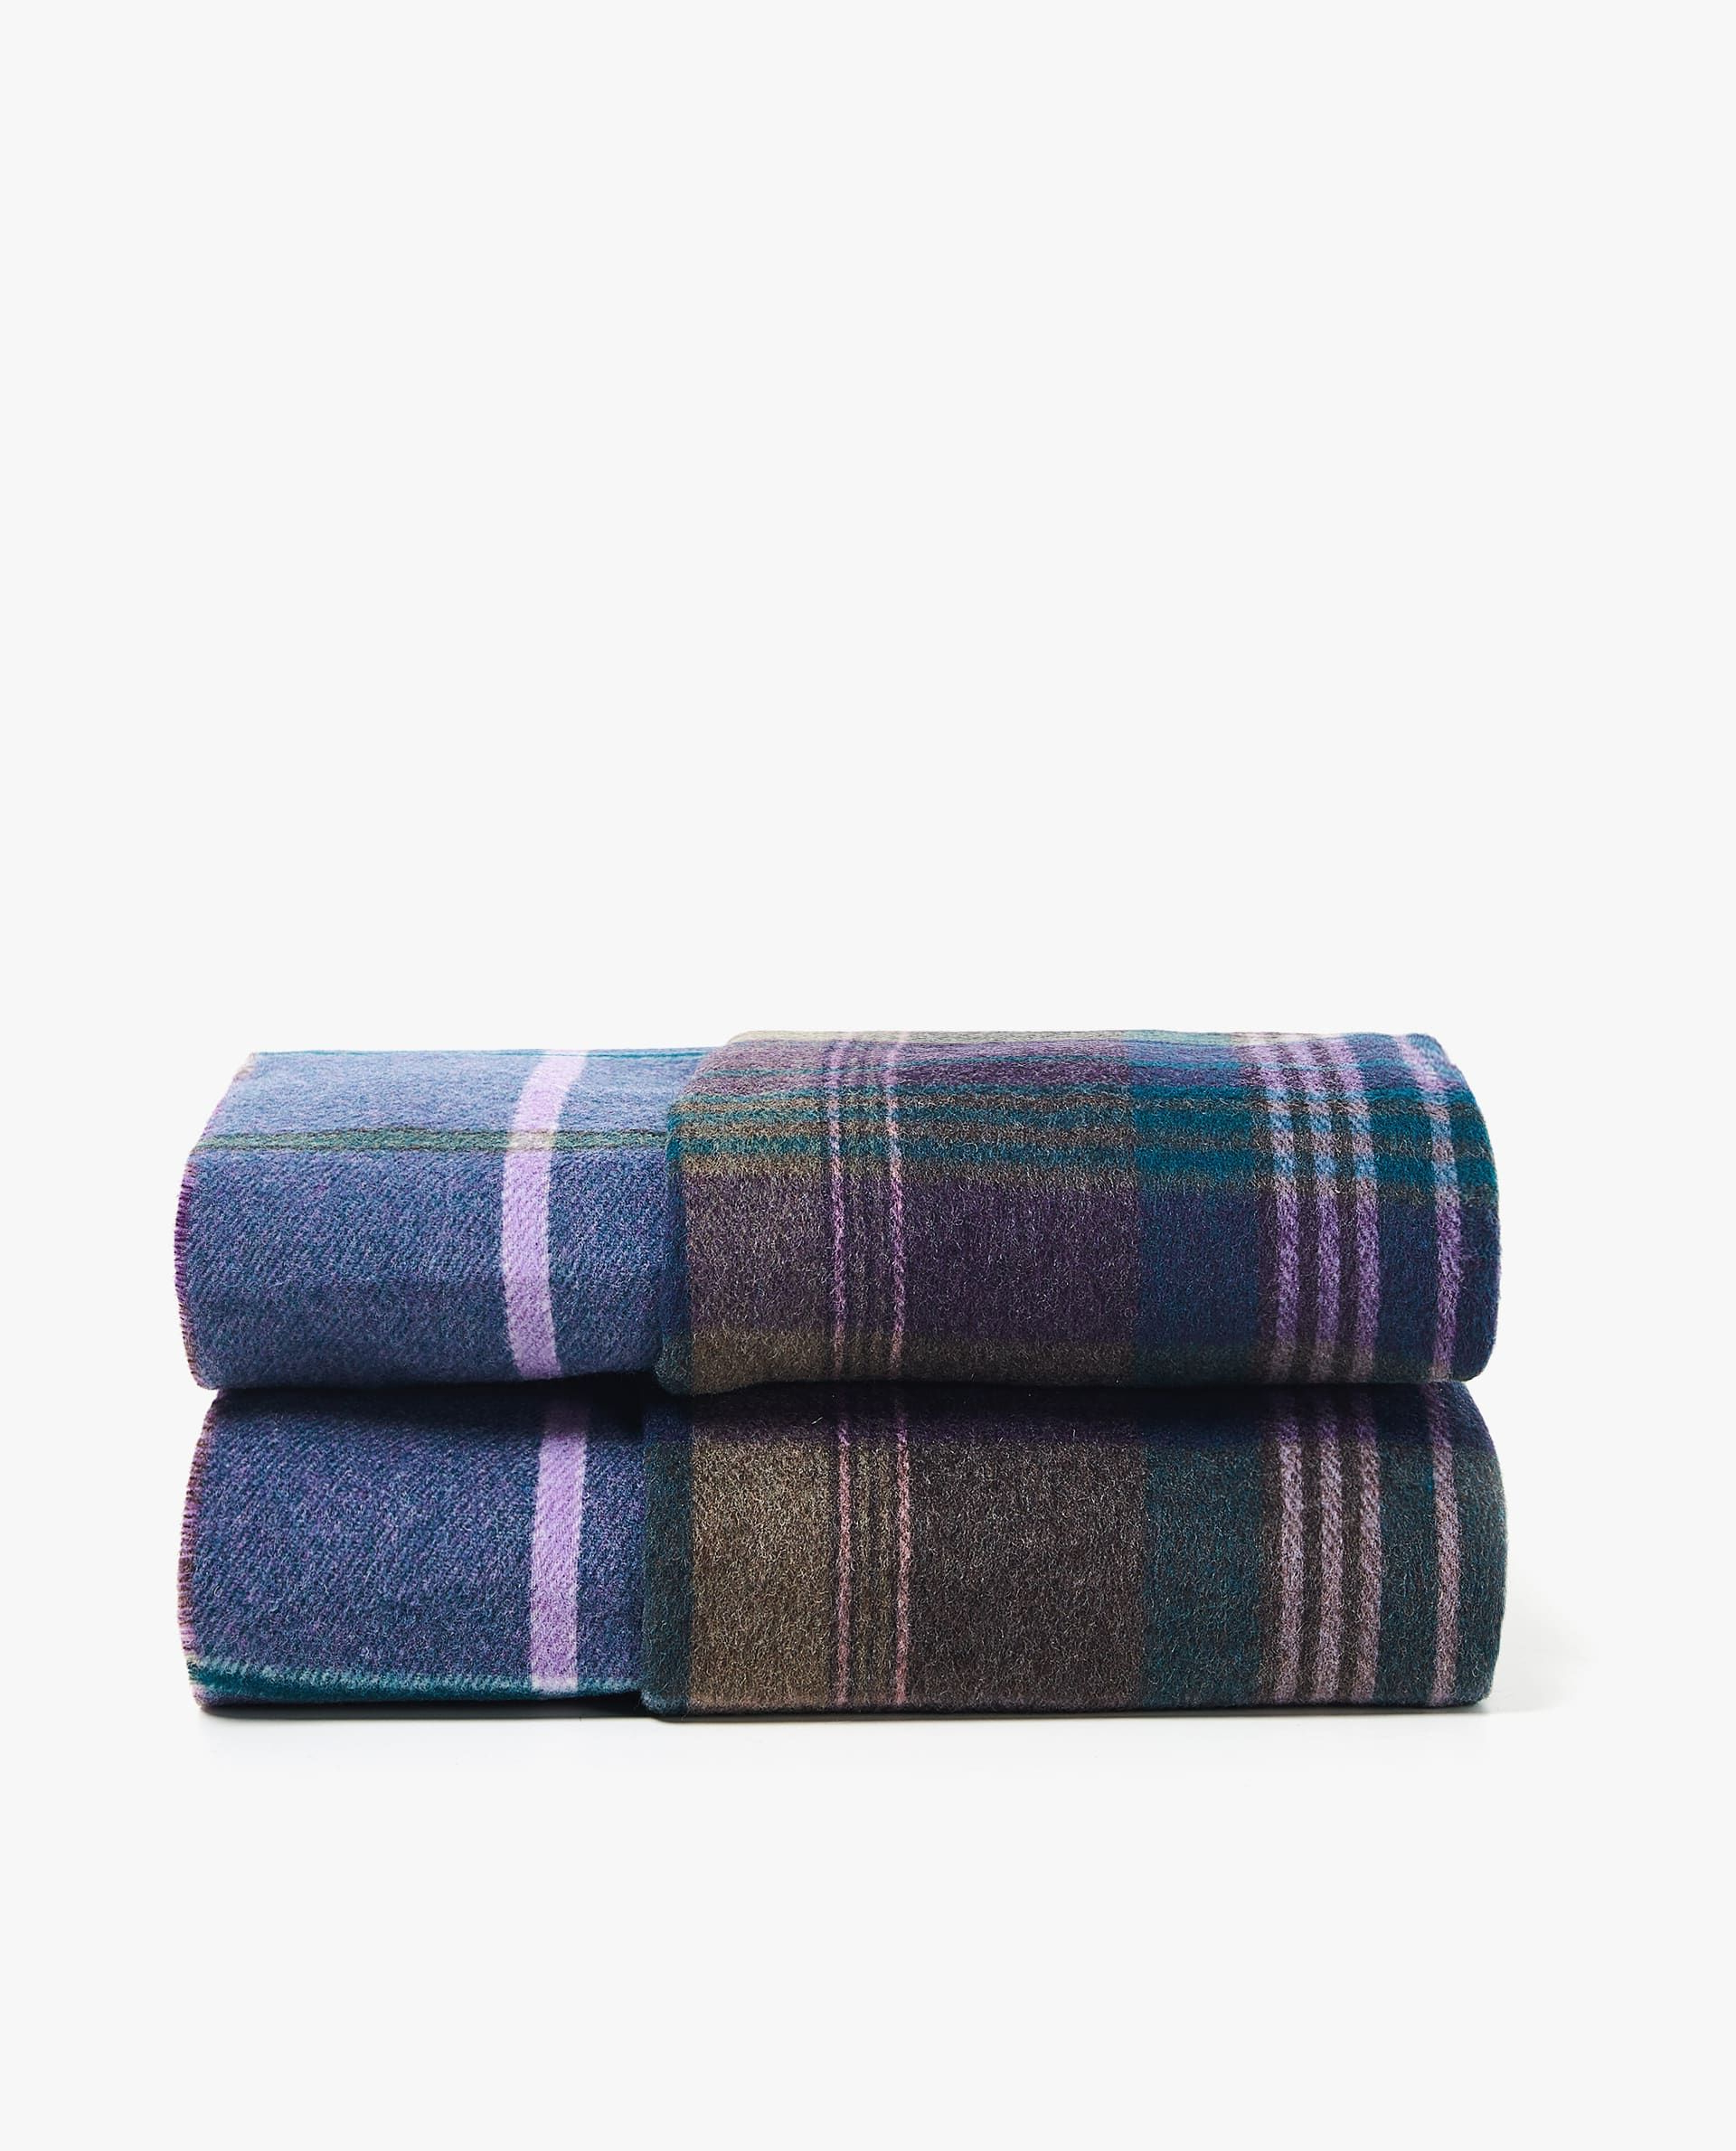 Plaid sofa Zara Home Nkde Best Holiday Decorations From Zara Home Winter Collection 2018